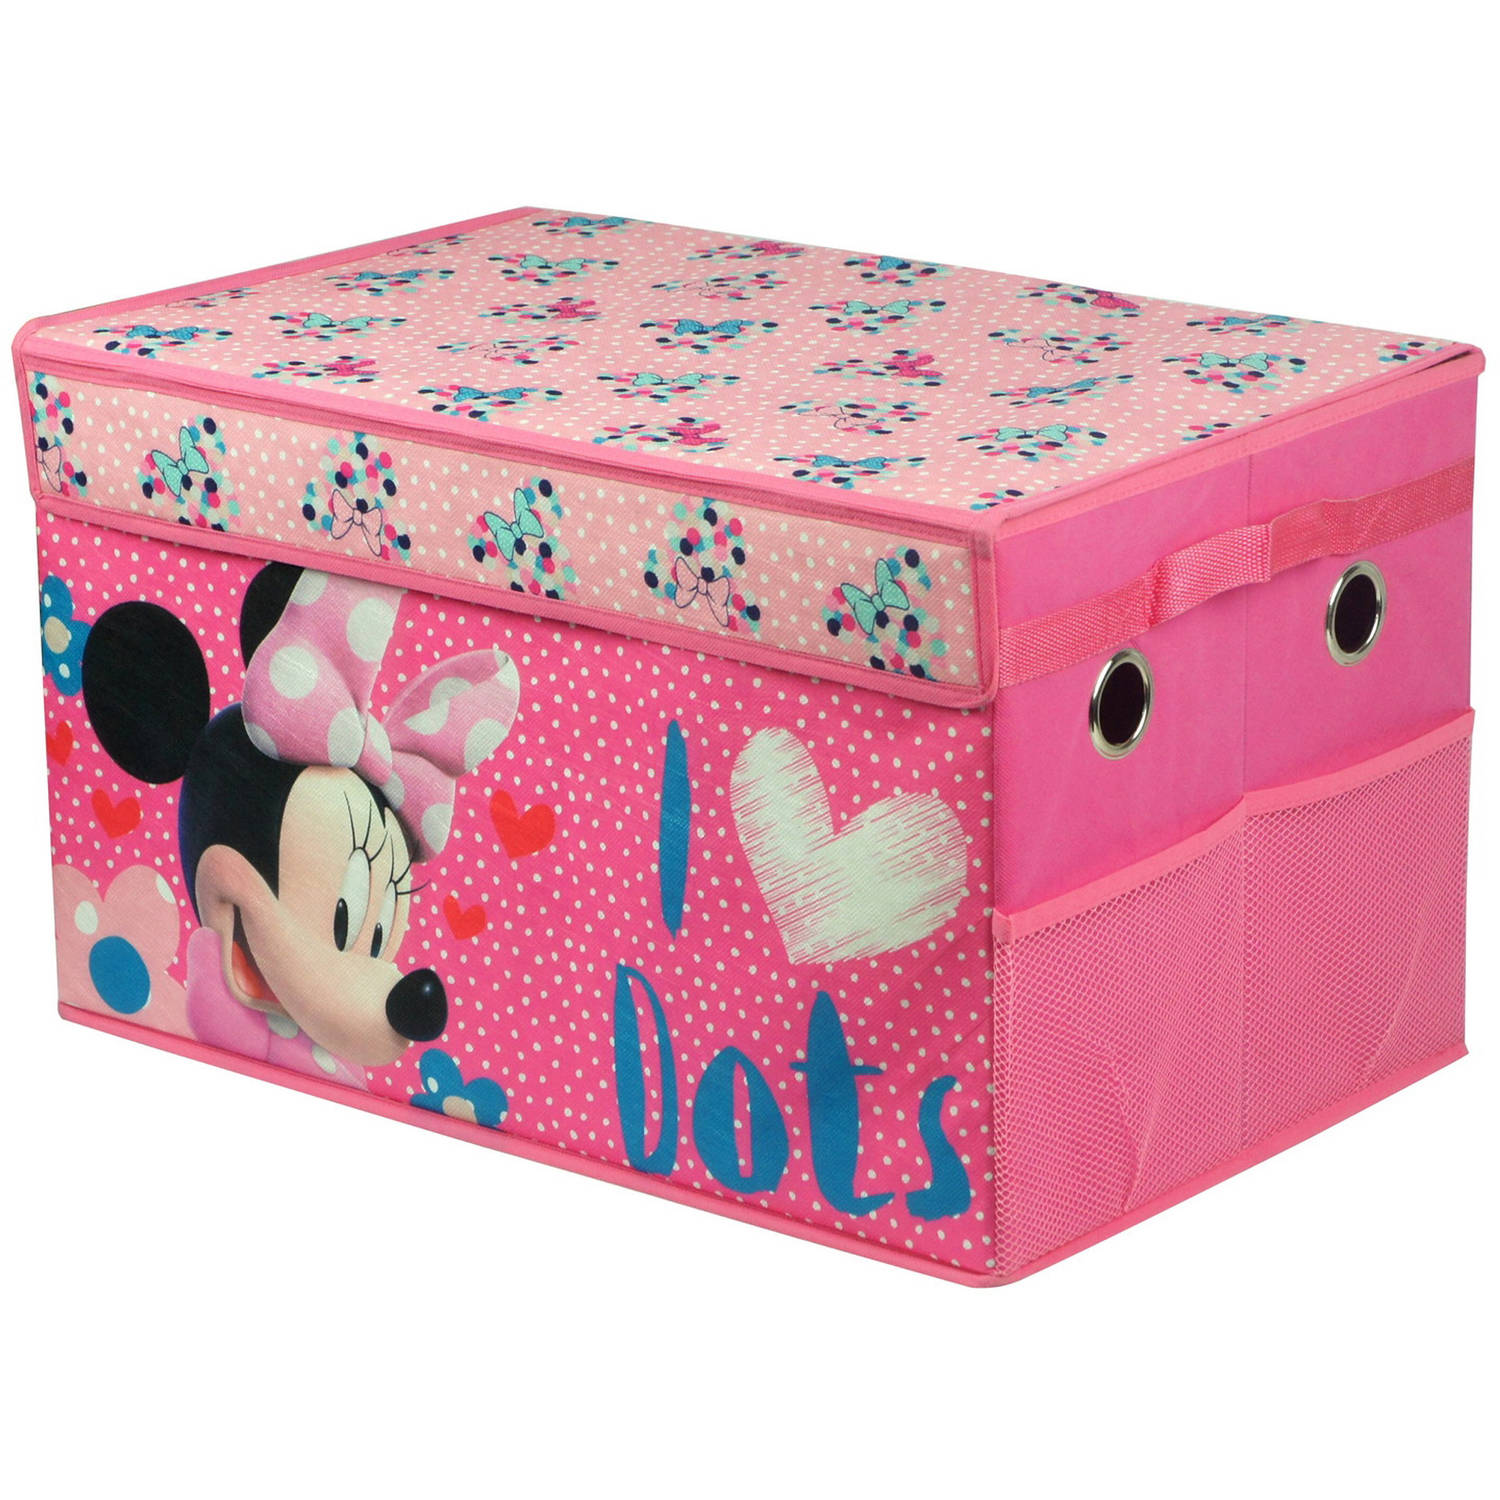 Charmant Minnie Mouse Collapsible Toy Storage Trunk